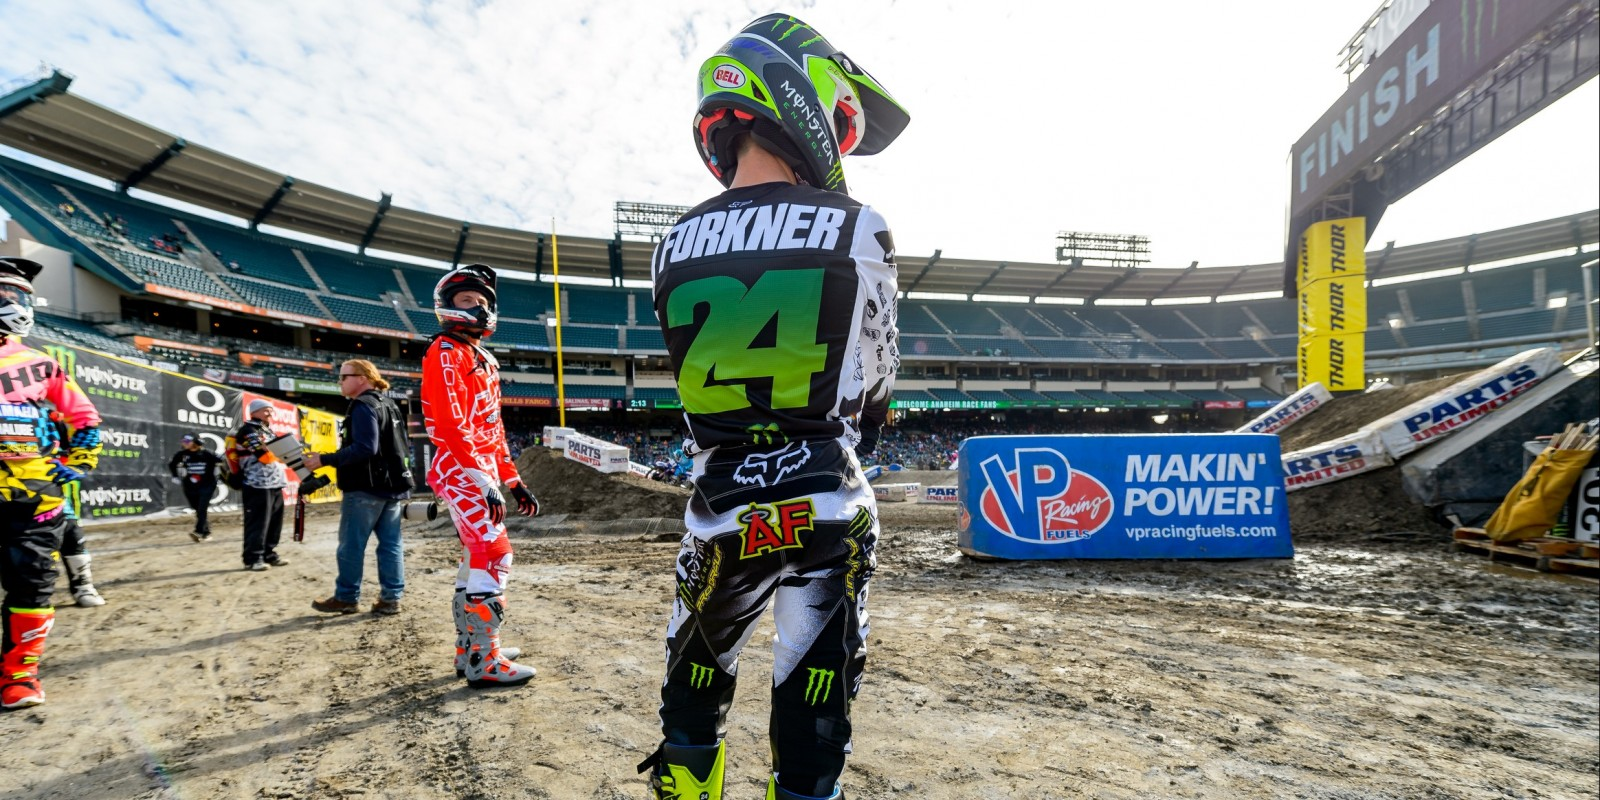 Monster athletes during the qualifying race at the 2017 Supercross in Anaheim, California Stop 2